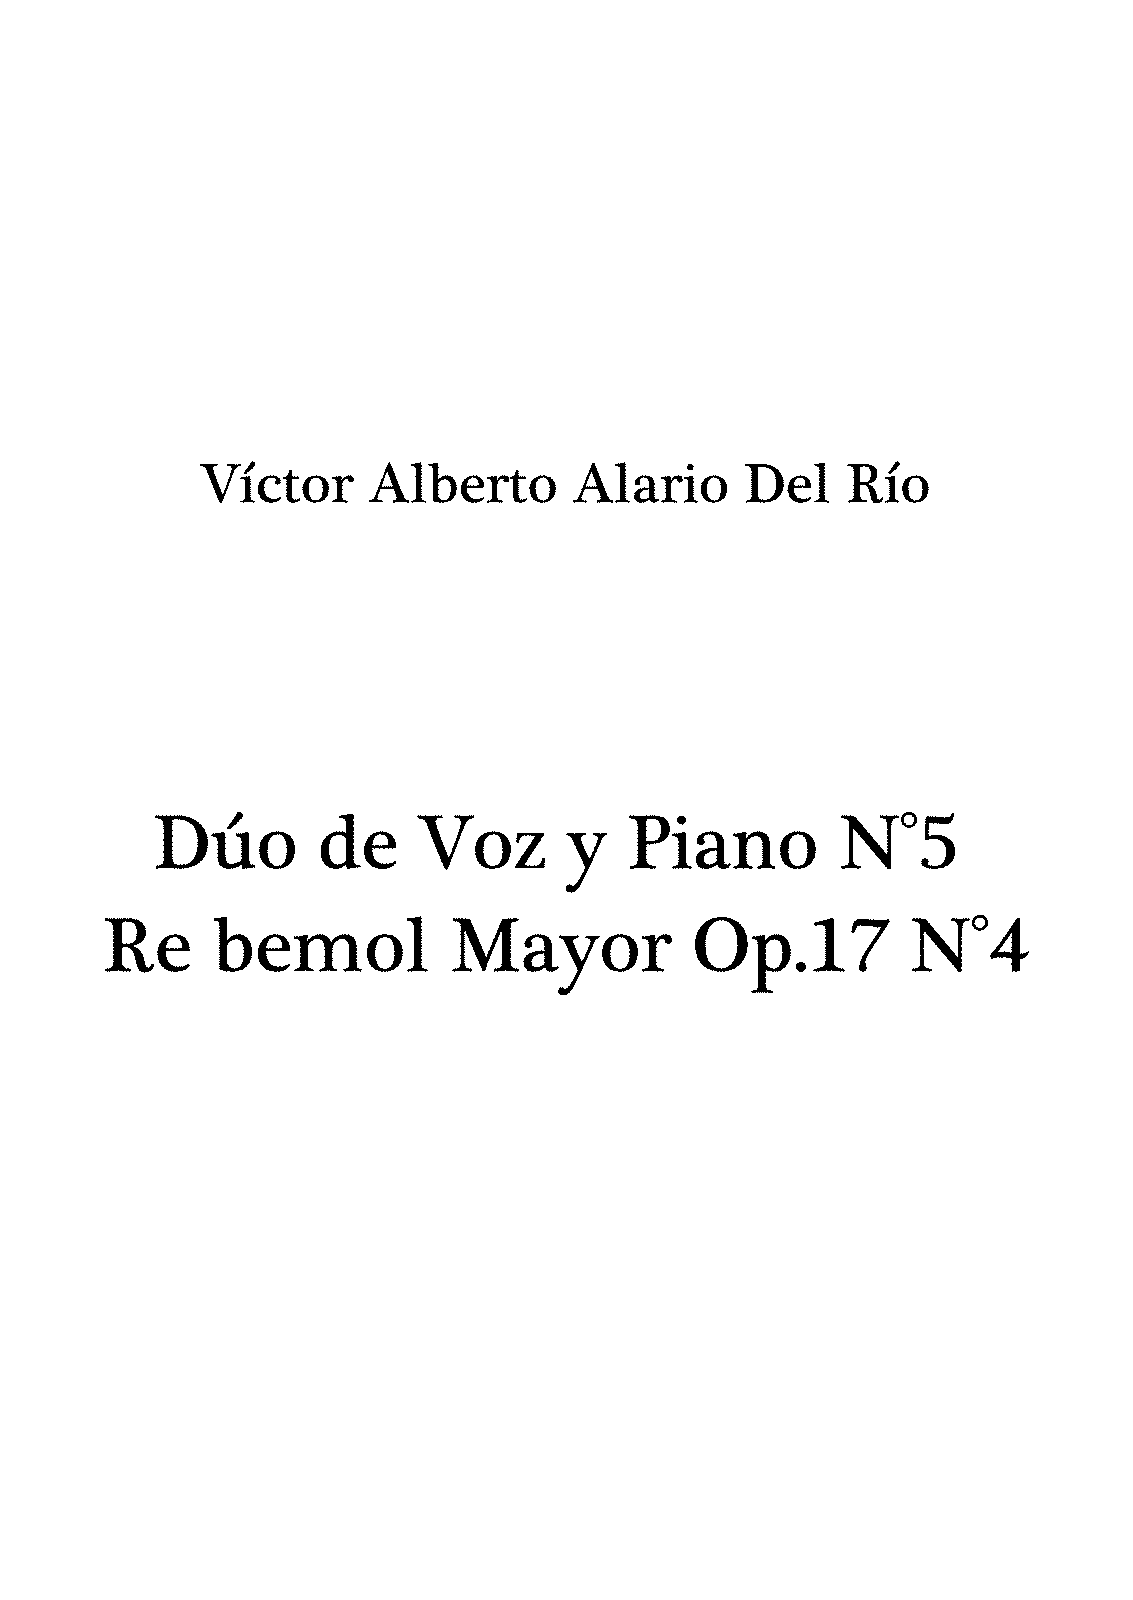 PMLP712921-Dúo de Voz y Piano N°5 Re bemol Mayor Op.17 N°4.pdf